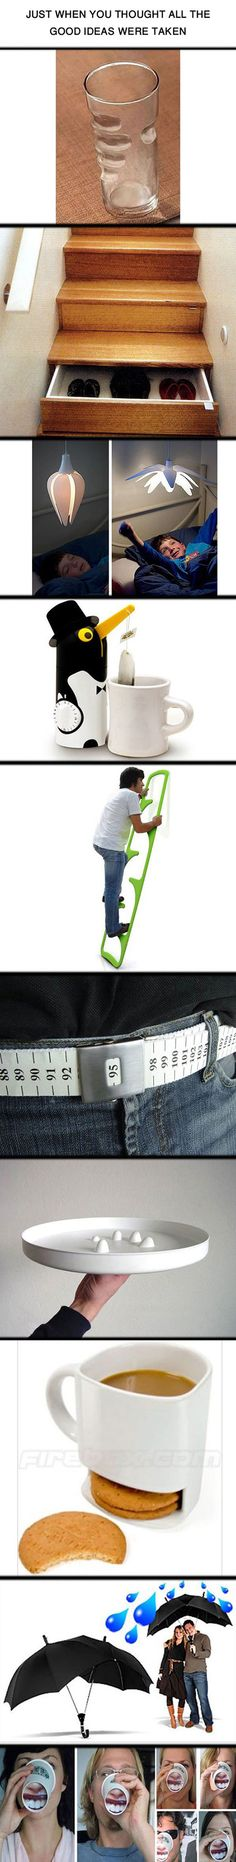 Just some clever ideas that are creative and borderline genius. SHUT UP AND TAKE MY MONEY!